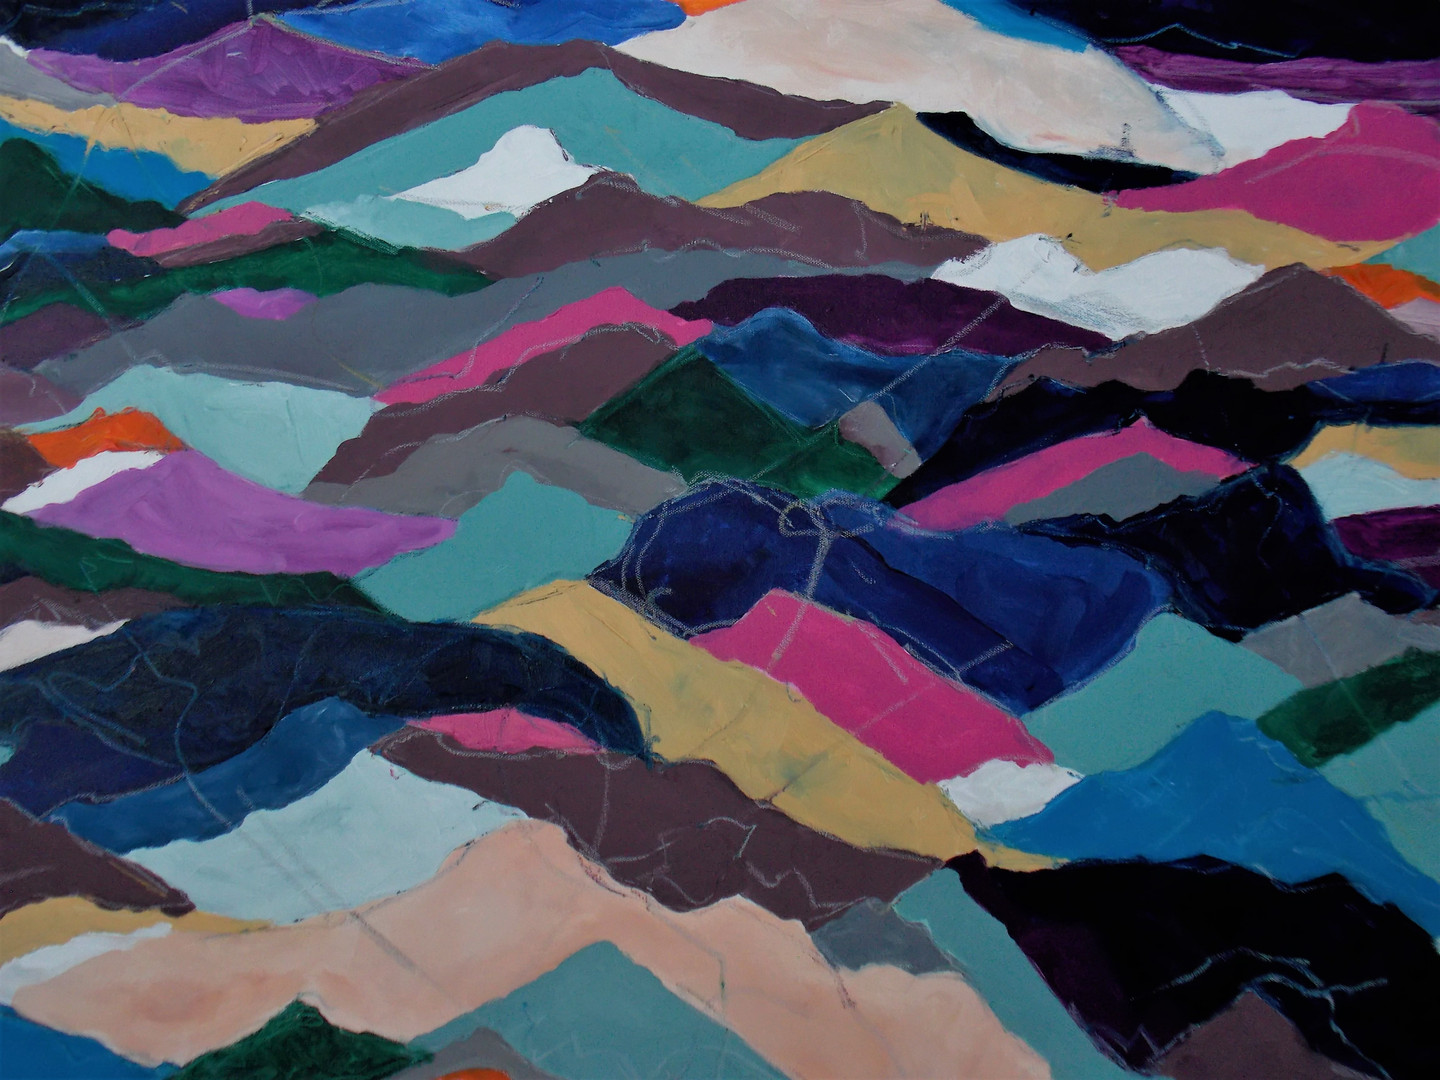 Colored Mountains Close Up 2